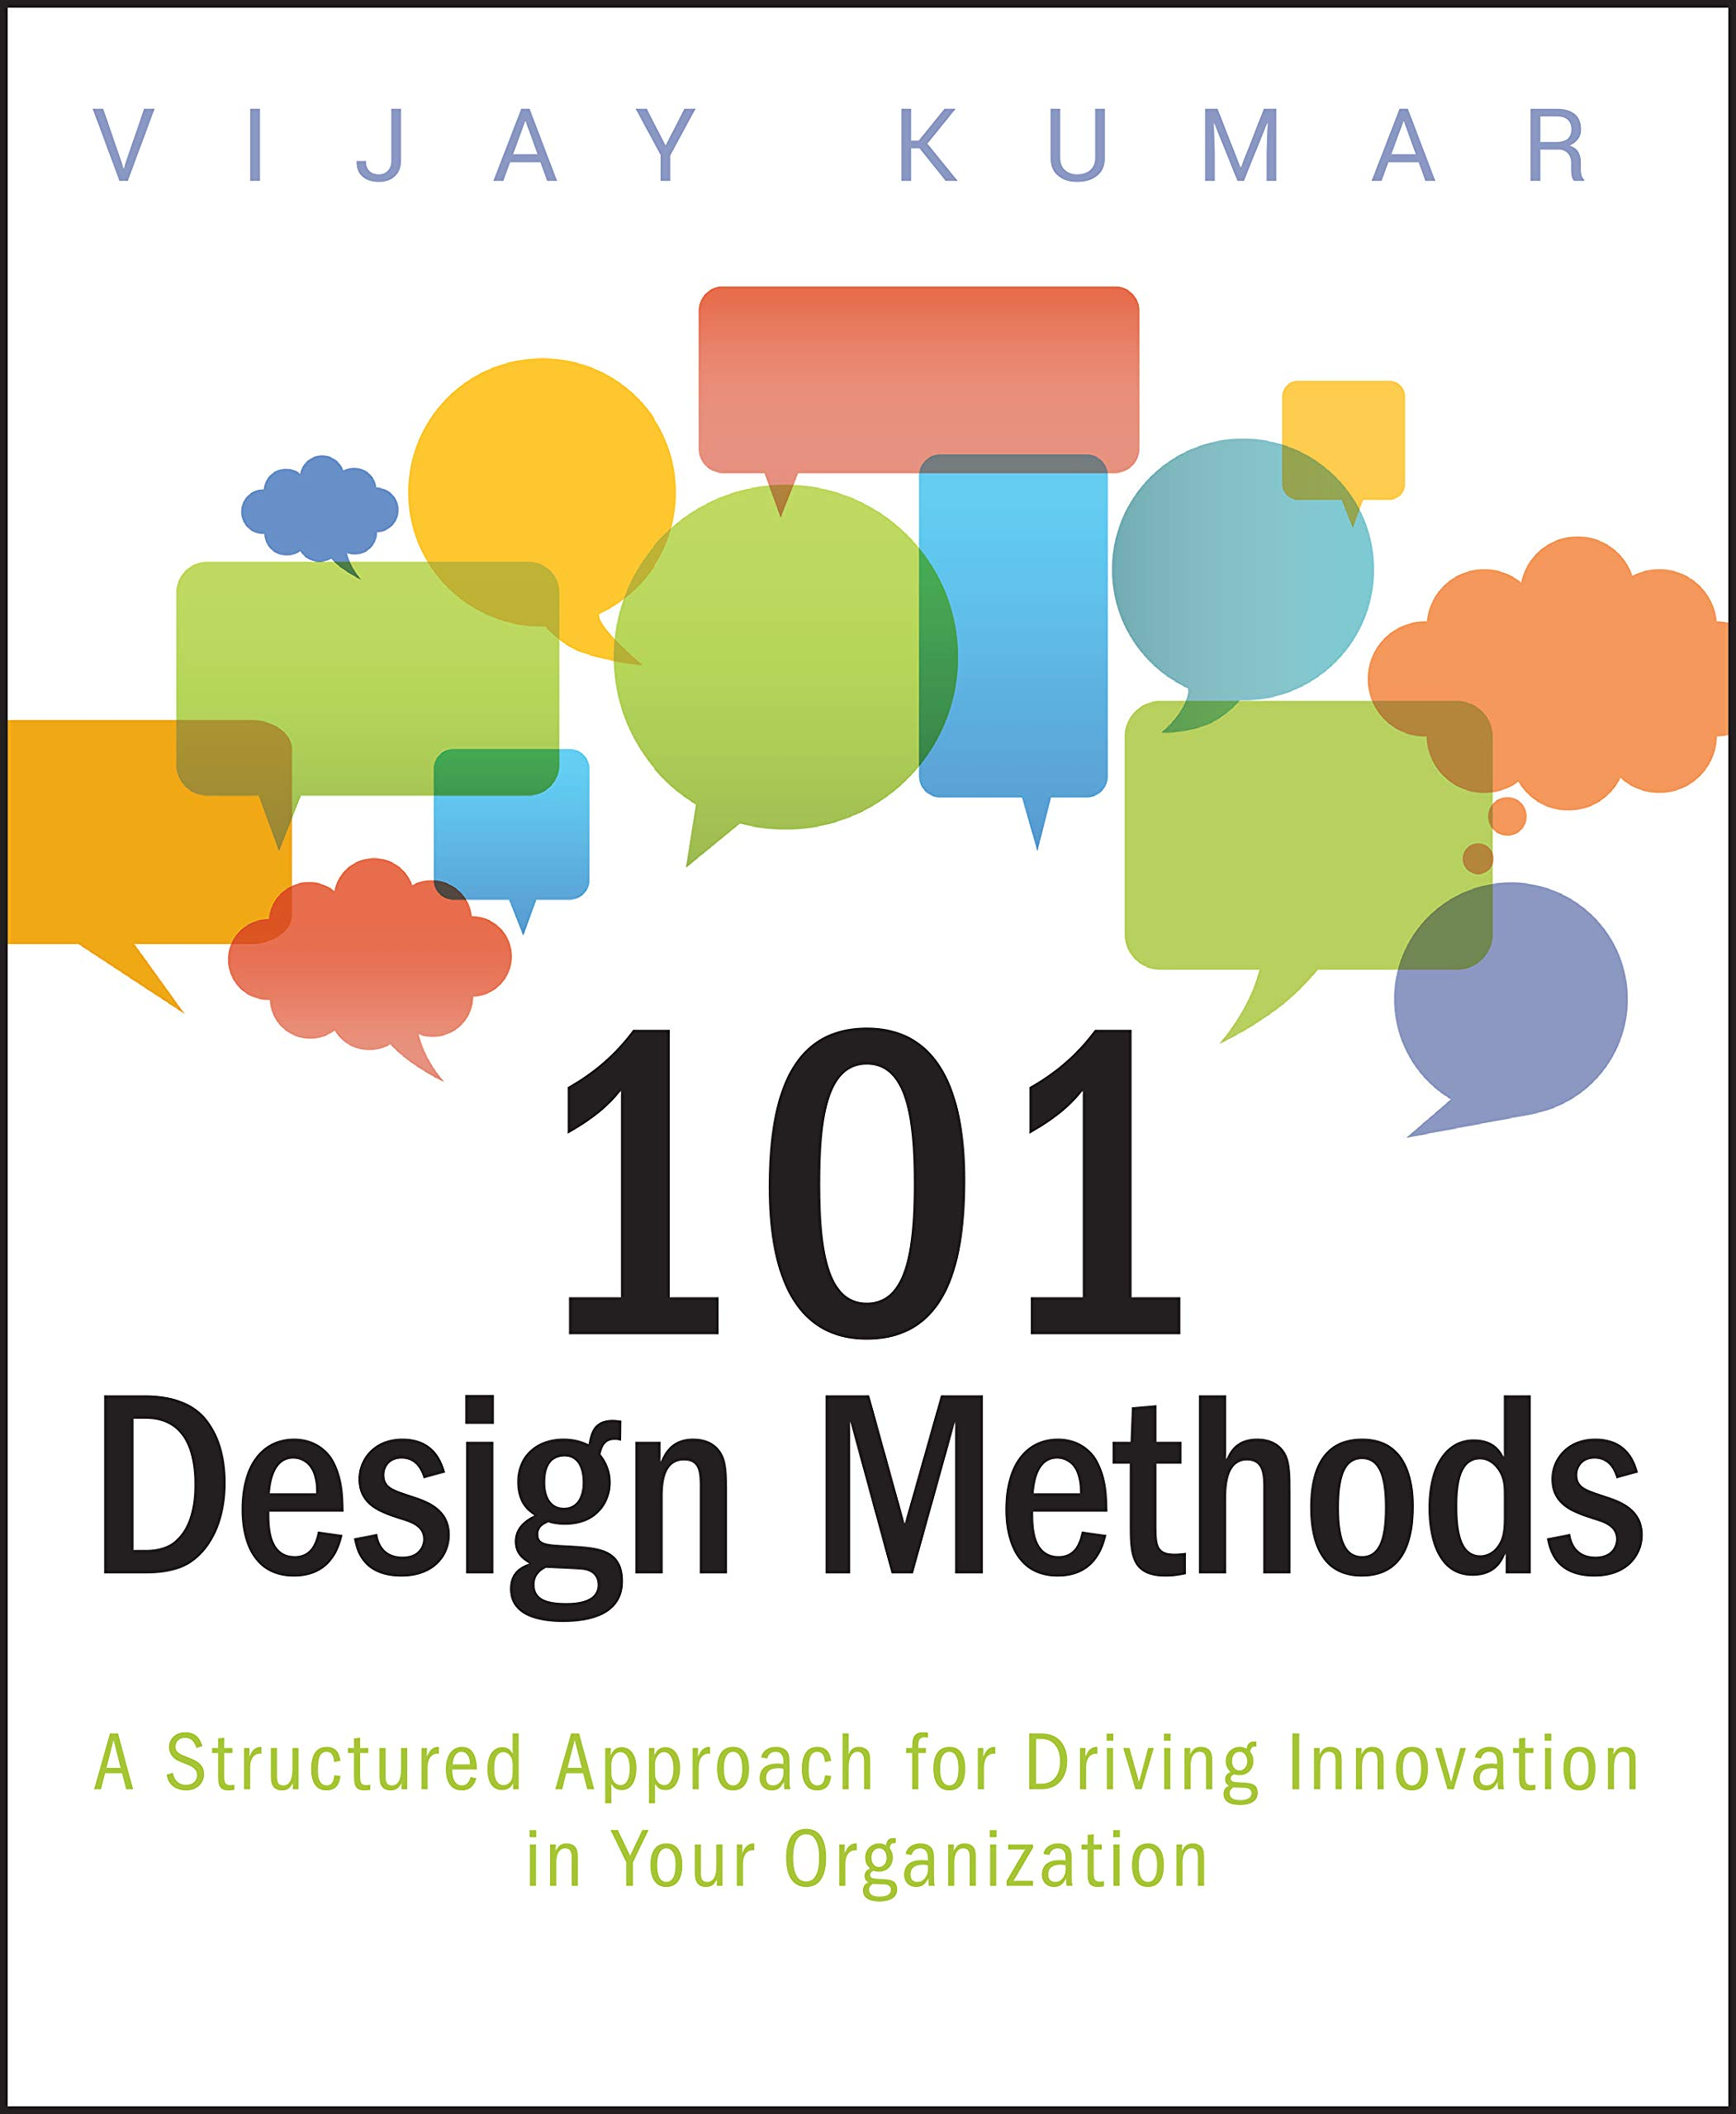 101 Design Methods A Structured Approach For Driving Innovation In Your Organization Kumar Vijay 9781118083468 Amazon Com Books